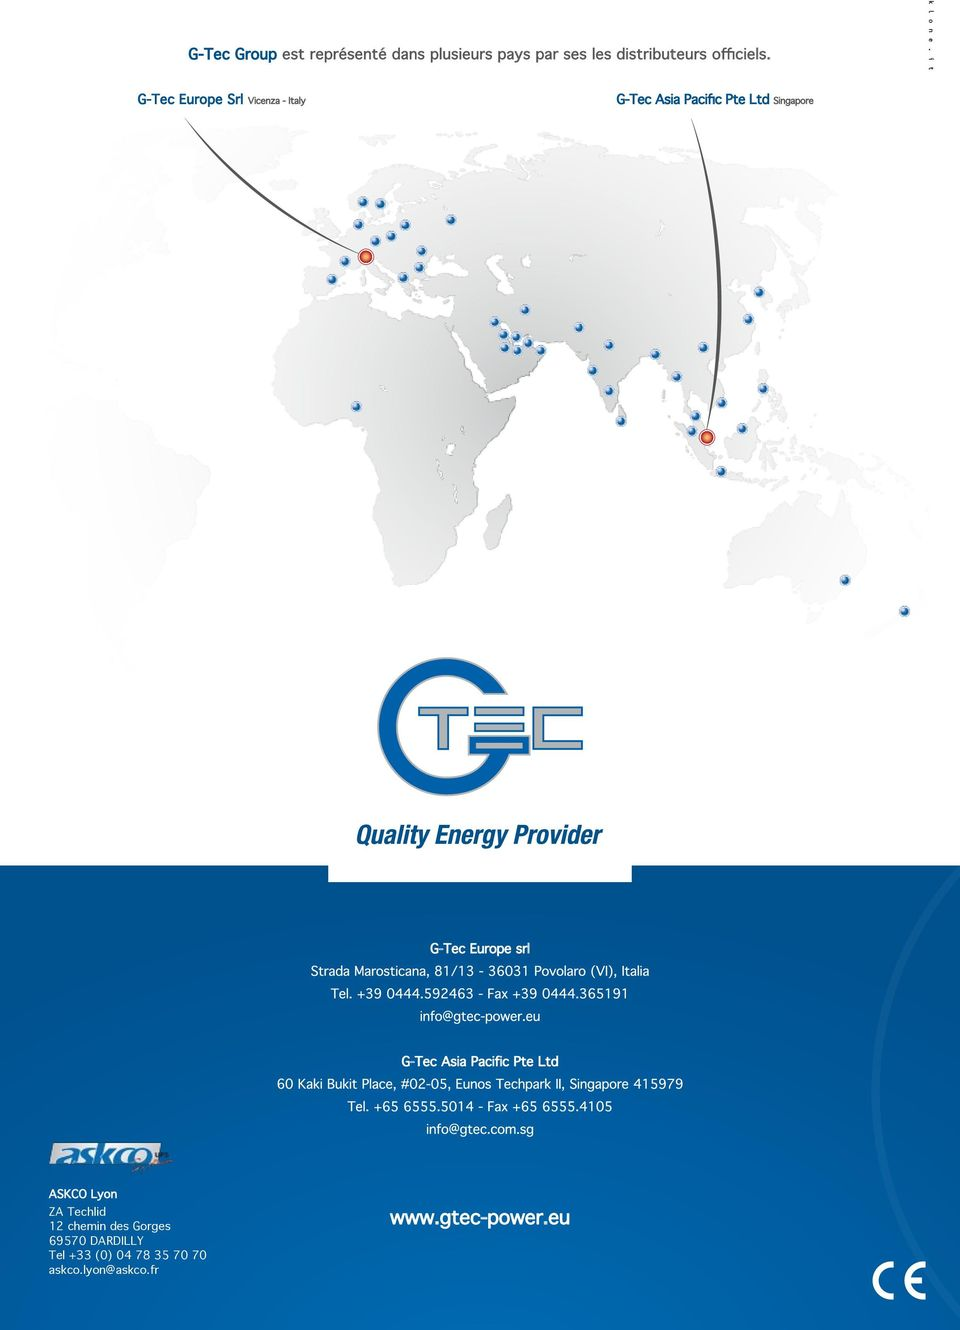 G-Tec Europe Srl Vicenza - Italy G-Tec Asia Pacific Pte Ltd